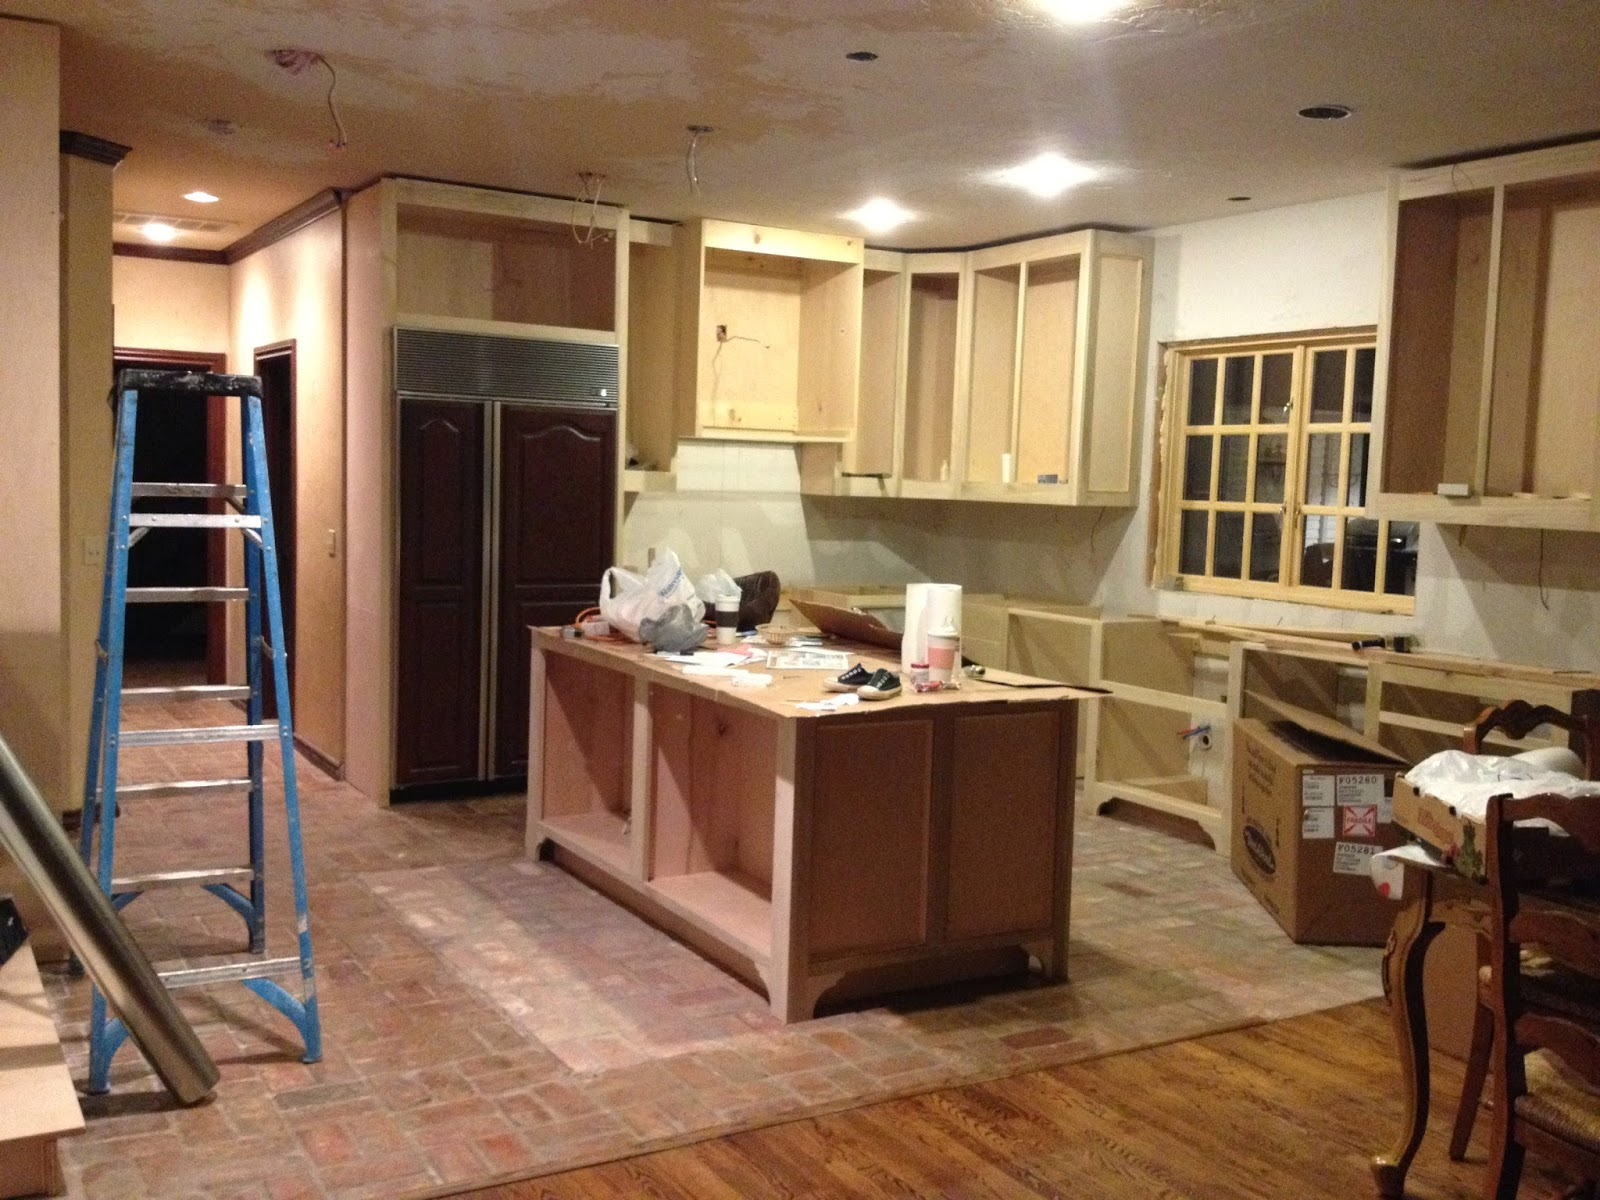 Lowered cabinets and yes, we have cardboard on the island. Remember